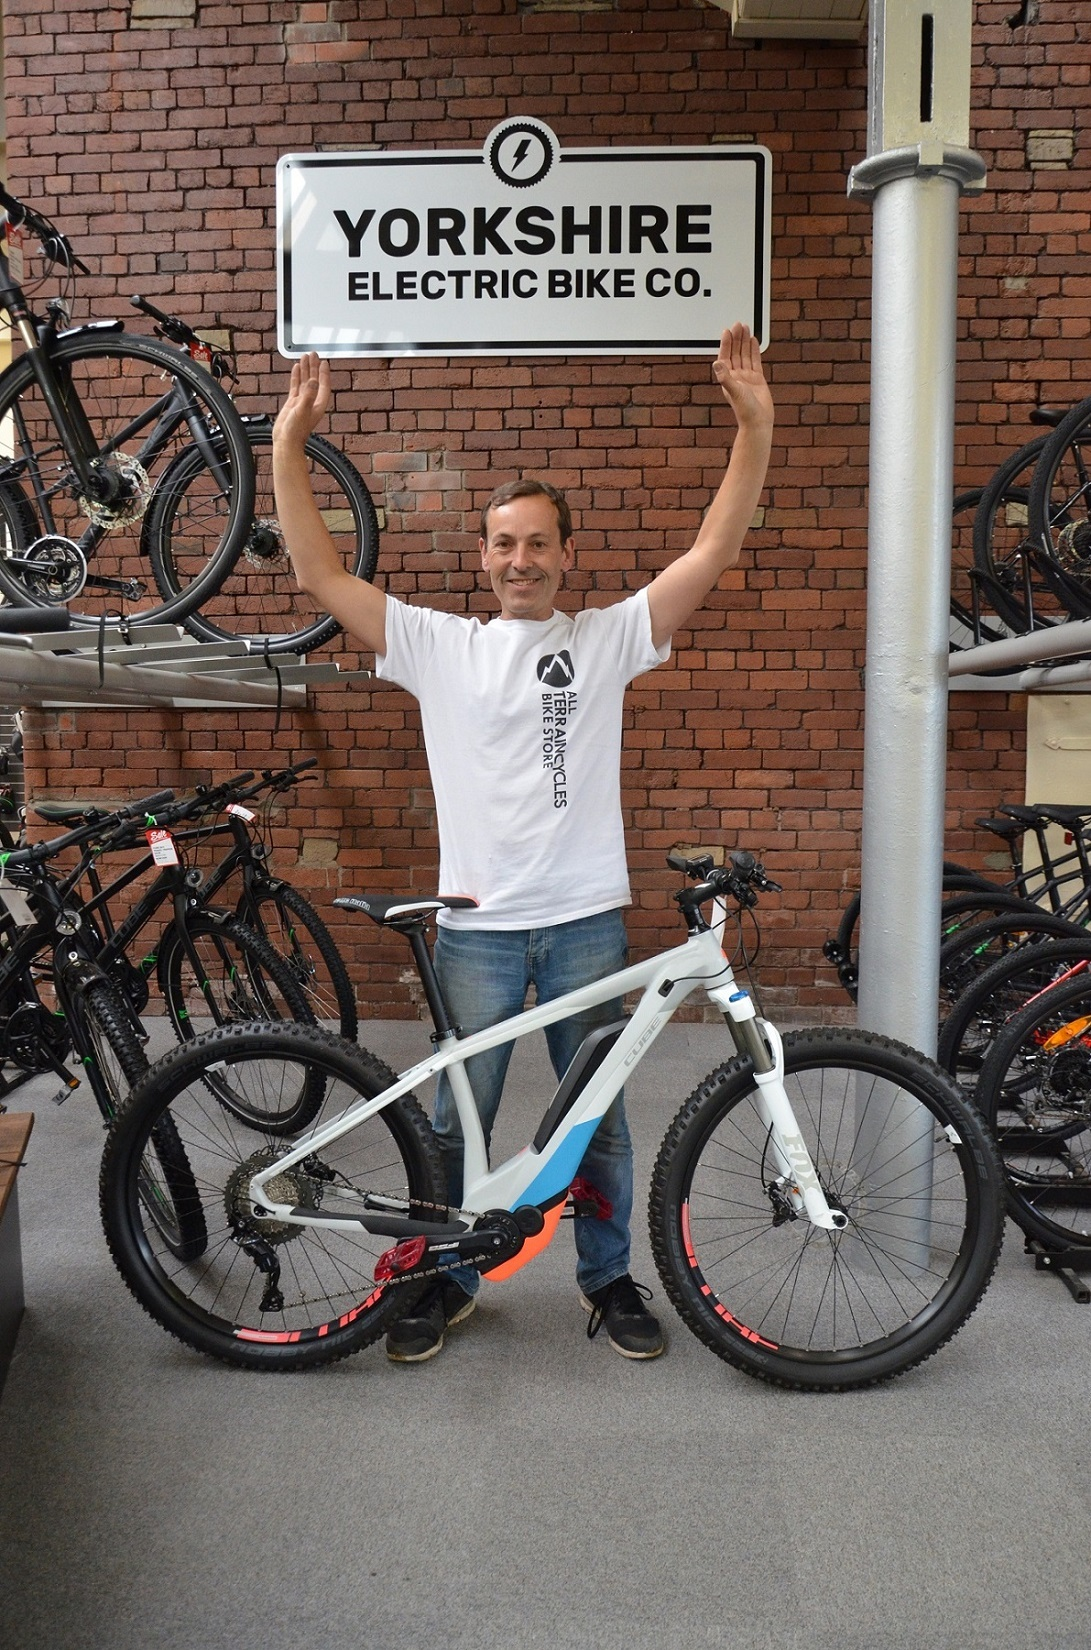 Tony Booth, of the Yorkshire Electric Bike Company